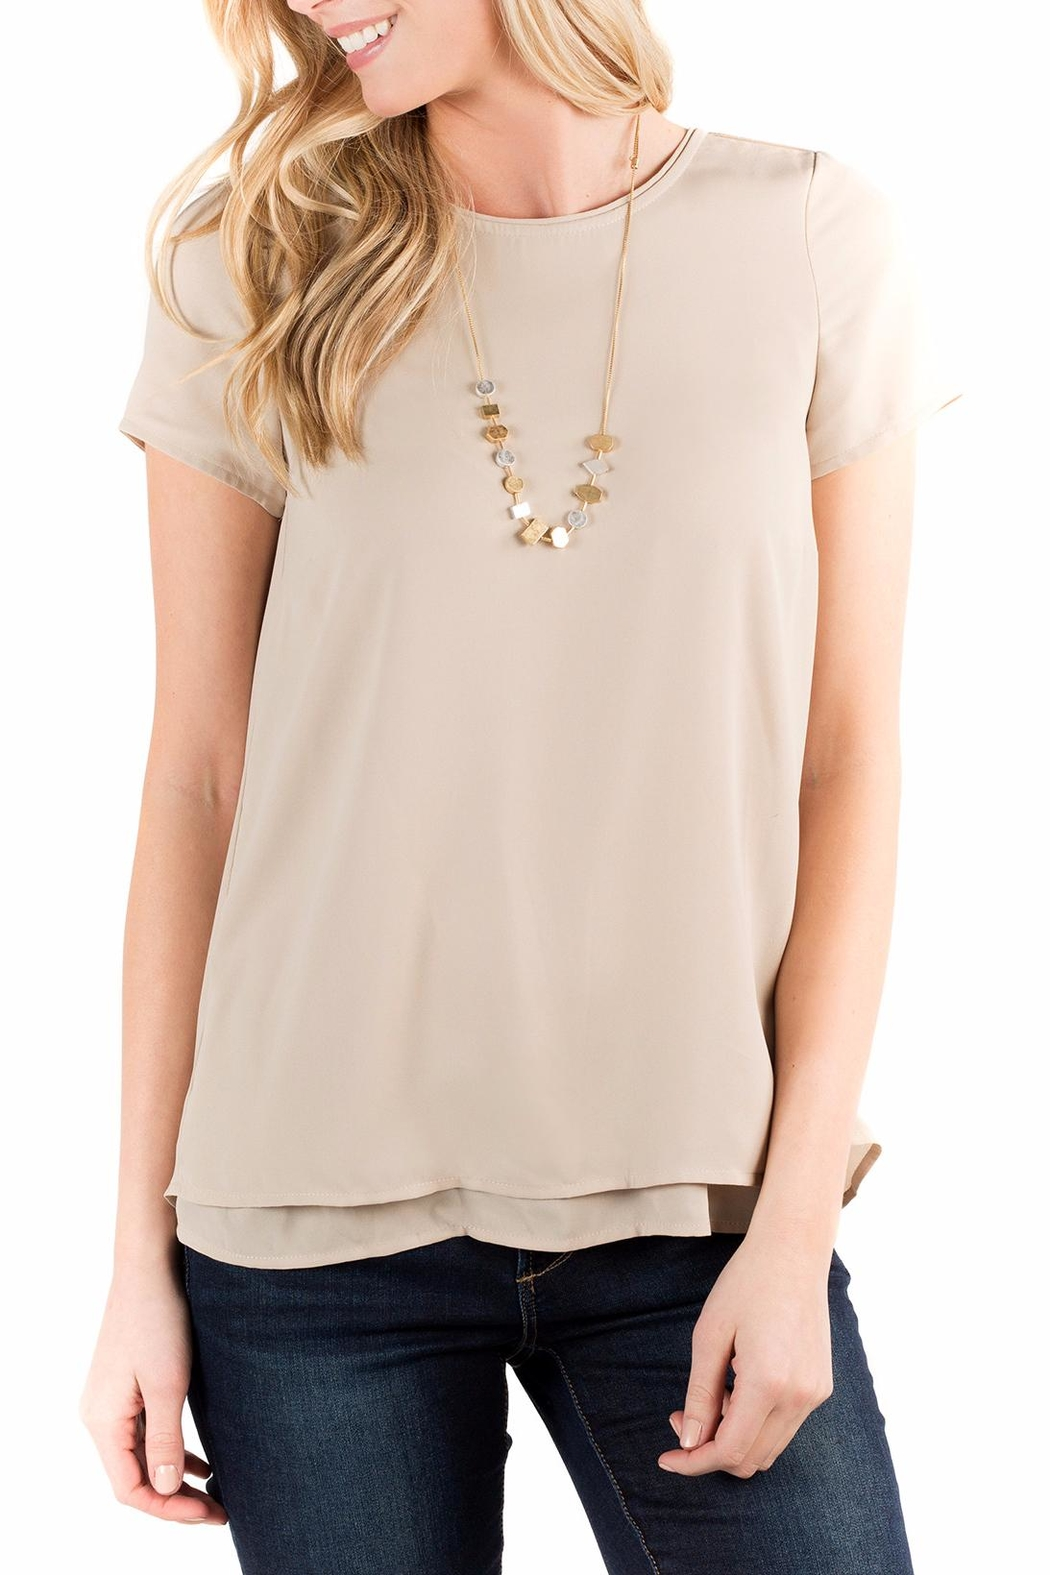 Downeast Basics Beige Button Back Blouse - Main Image